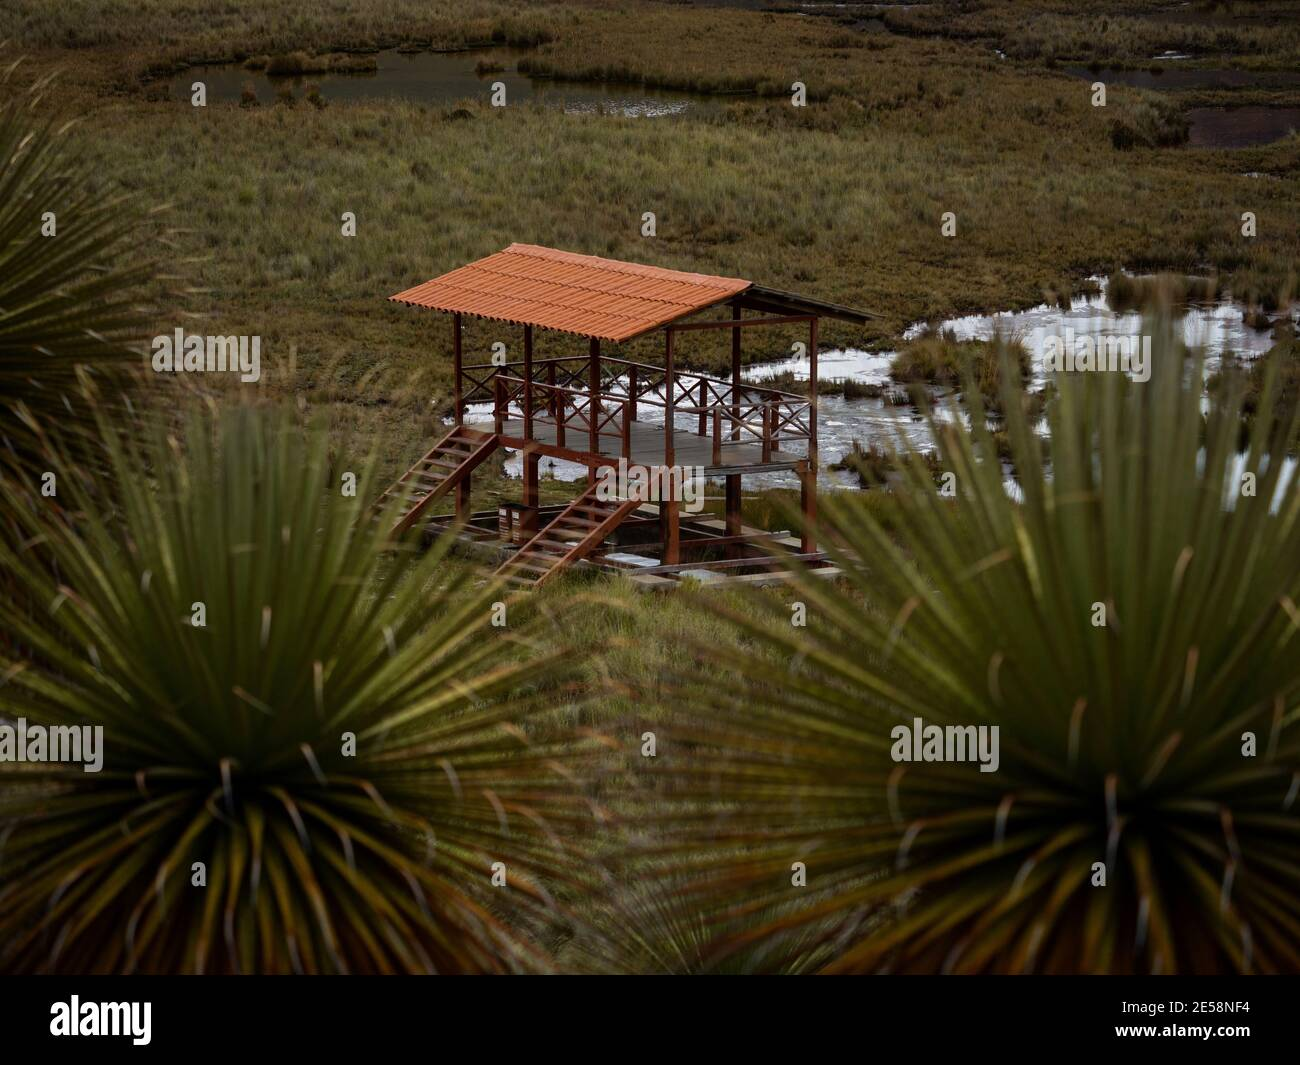 Observation deck wildlife viewing platform house building with Puya Raimondii bromeliad flower plant Titanka Queen of the Andes at Pastoruri Glacier A Stock Photo